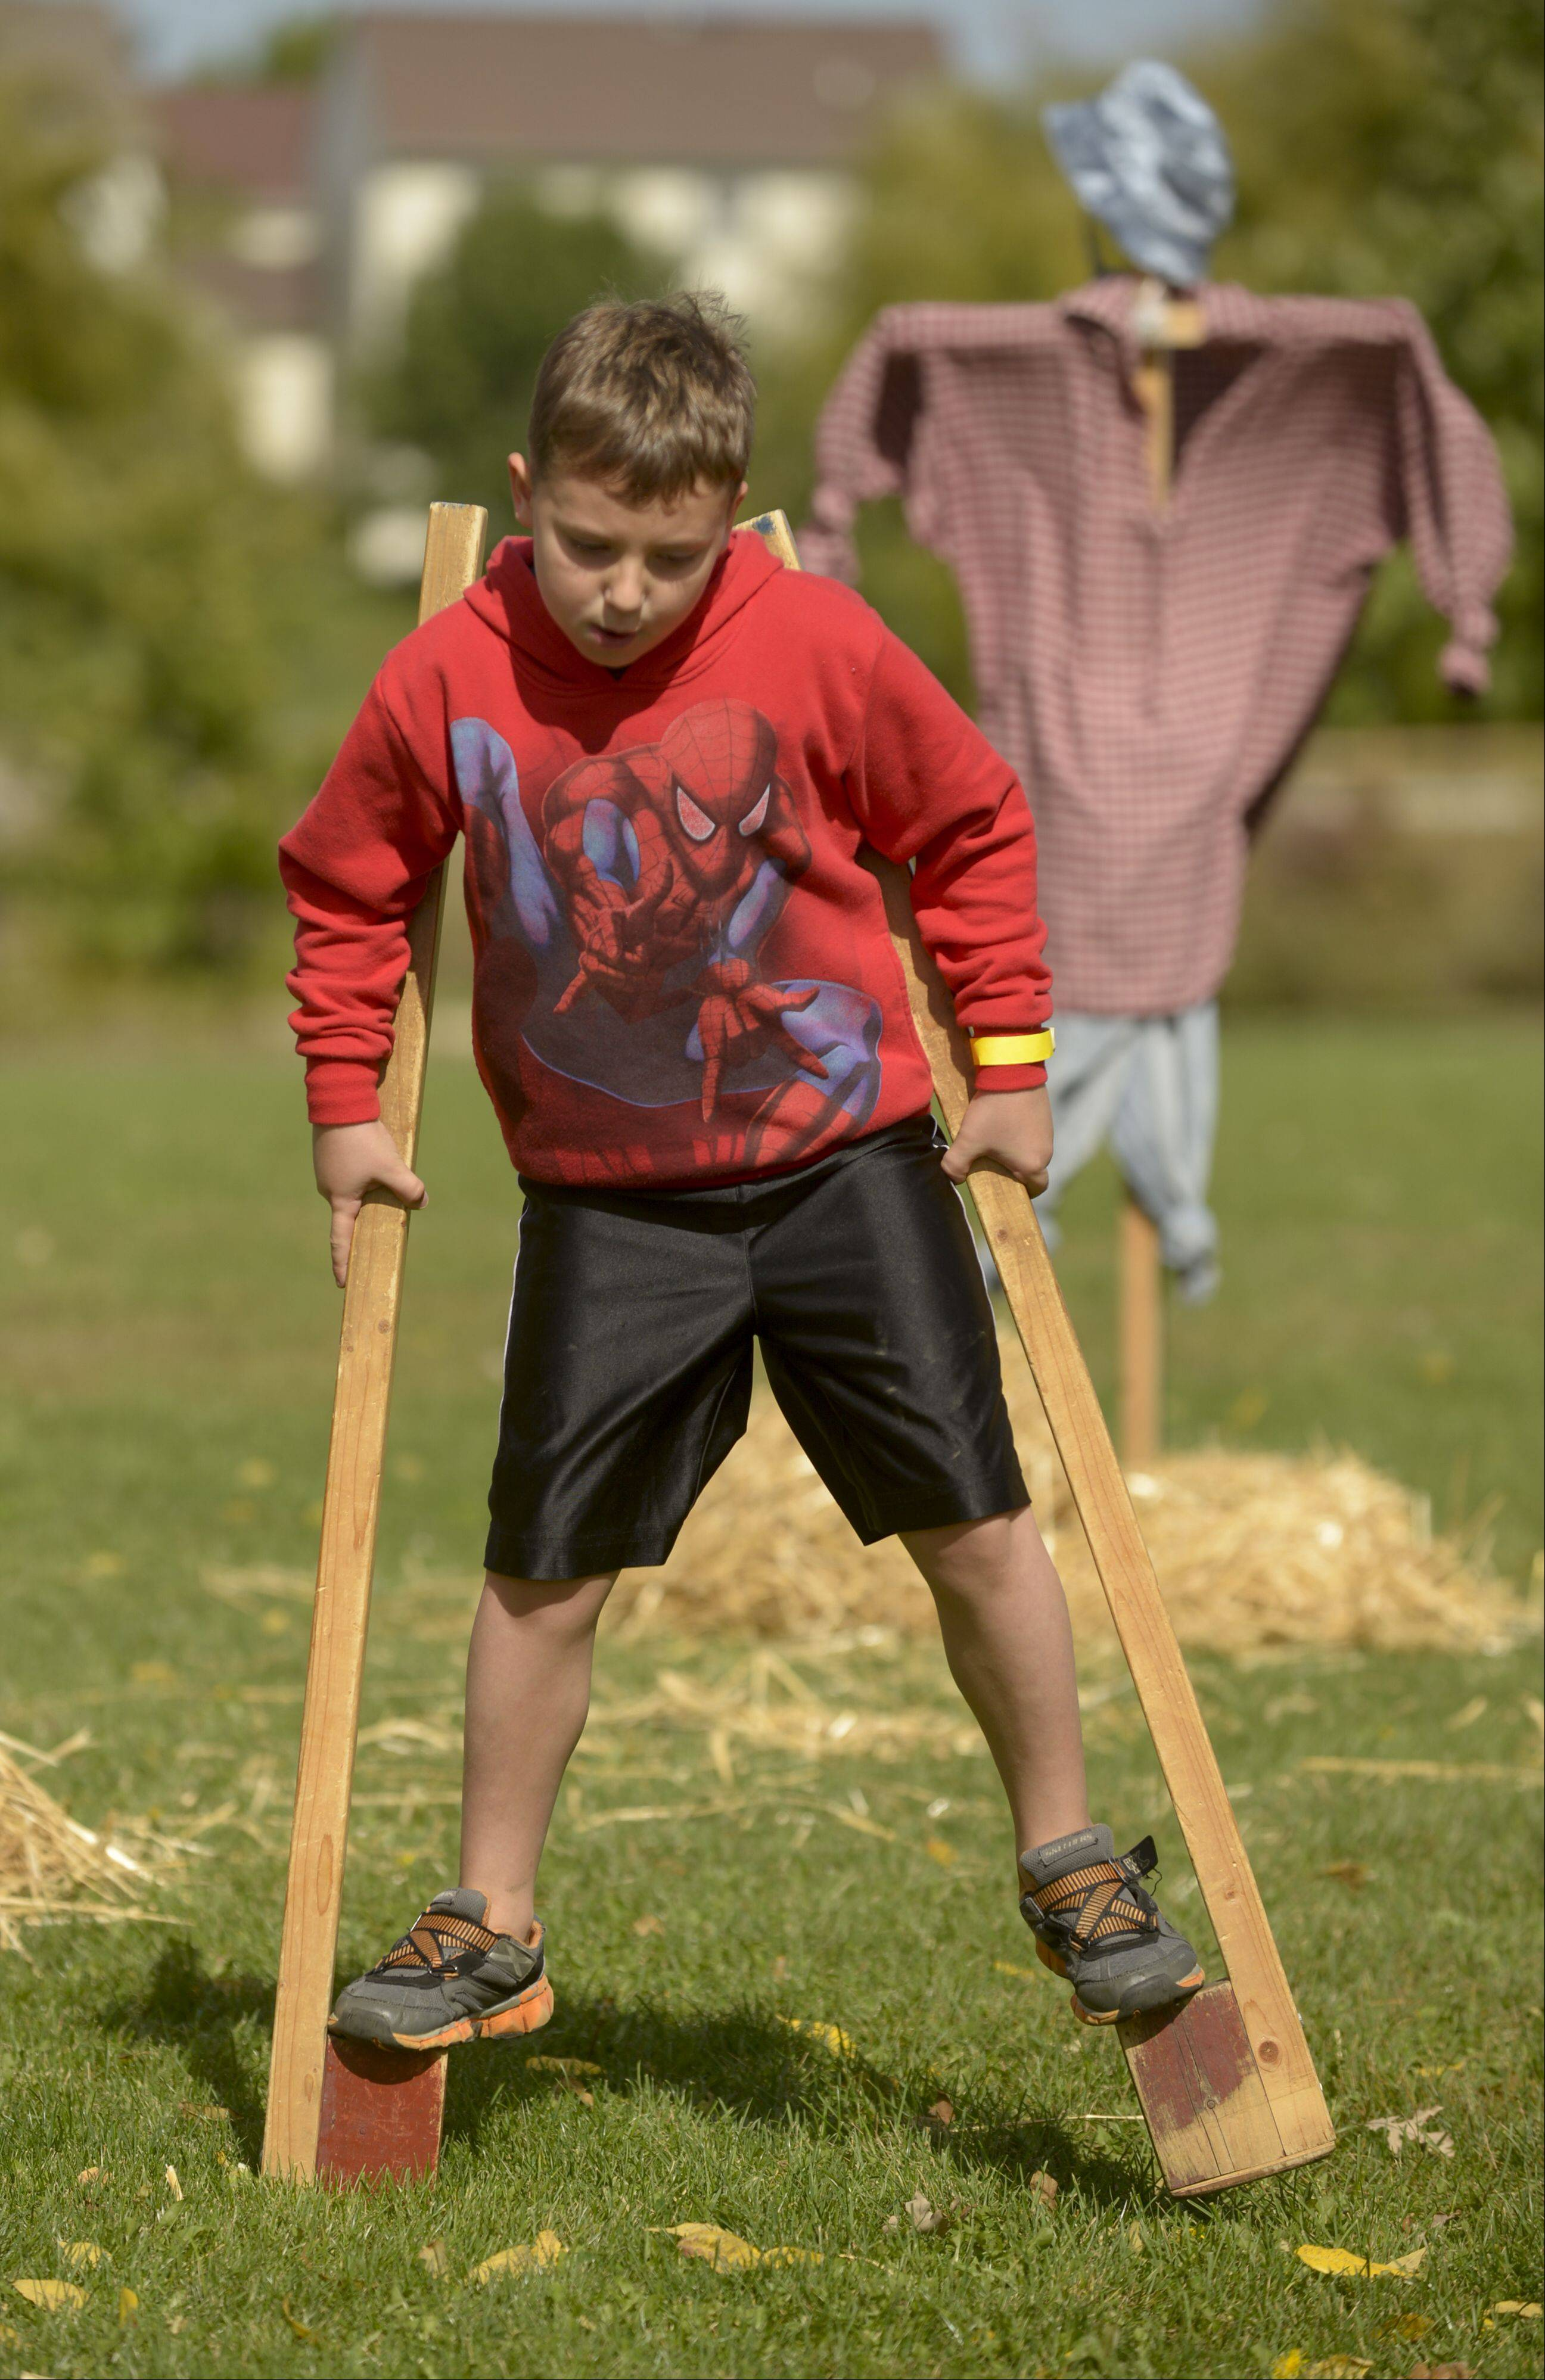 Drake Shaw, 6, of Lindenhurst tries using stilts Sunday while visiting the Bonner Heritage Farm's Country Fair in Lindenhurst. The event featured wagon rides, crafts, games and a petting zoo on an 1842 farm.